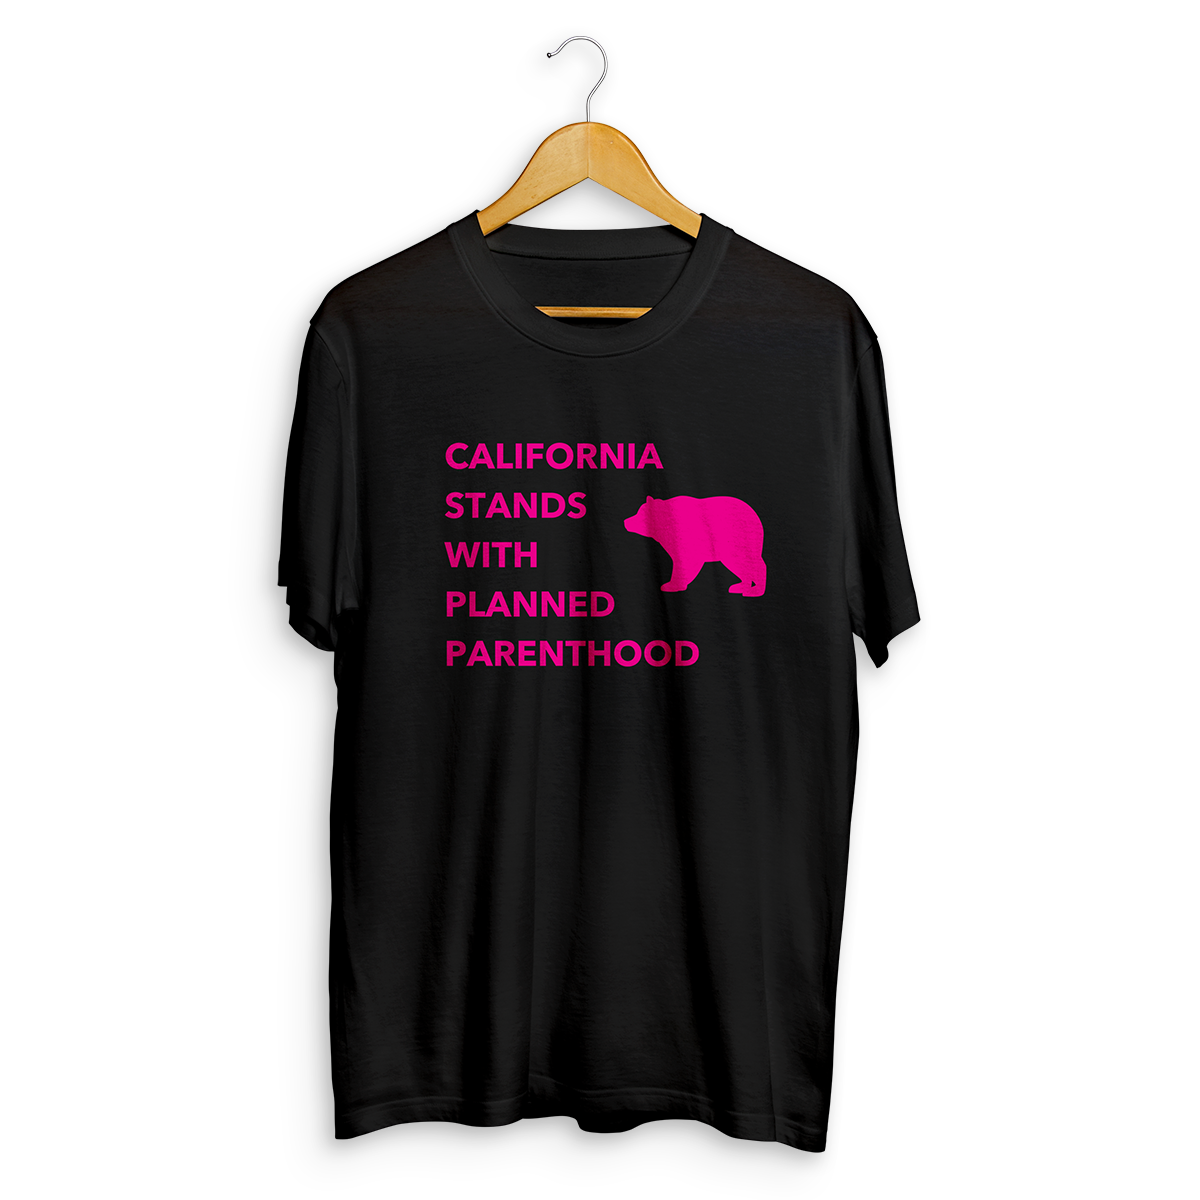 CA Stands With Planned Parenthood T-shirt